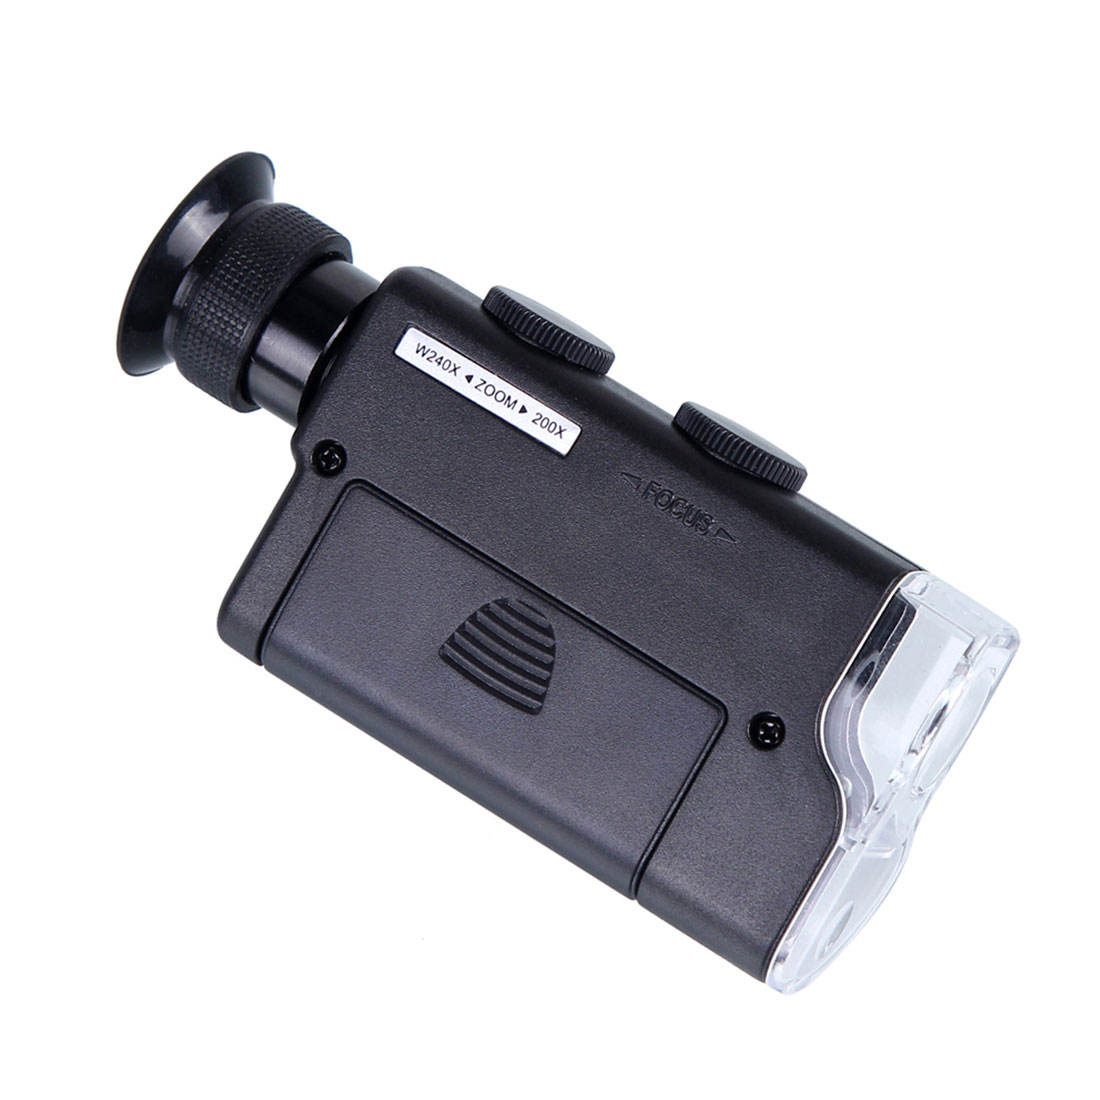 Mini Portable Microscope Pocket 200X~240X Handheld LED Lamp Light Loupe Zoom Magnifier Magnifying Glass Pocket Lens pocket 160 200 times magnifying glass microscope led lamp with light source